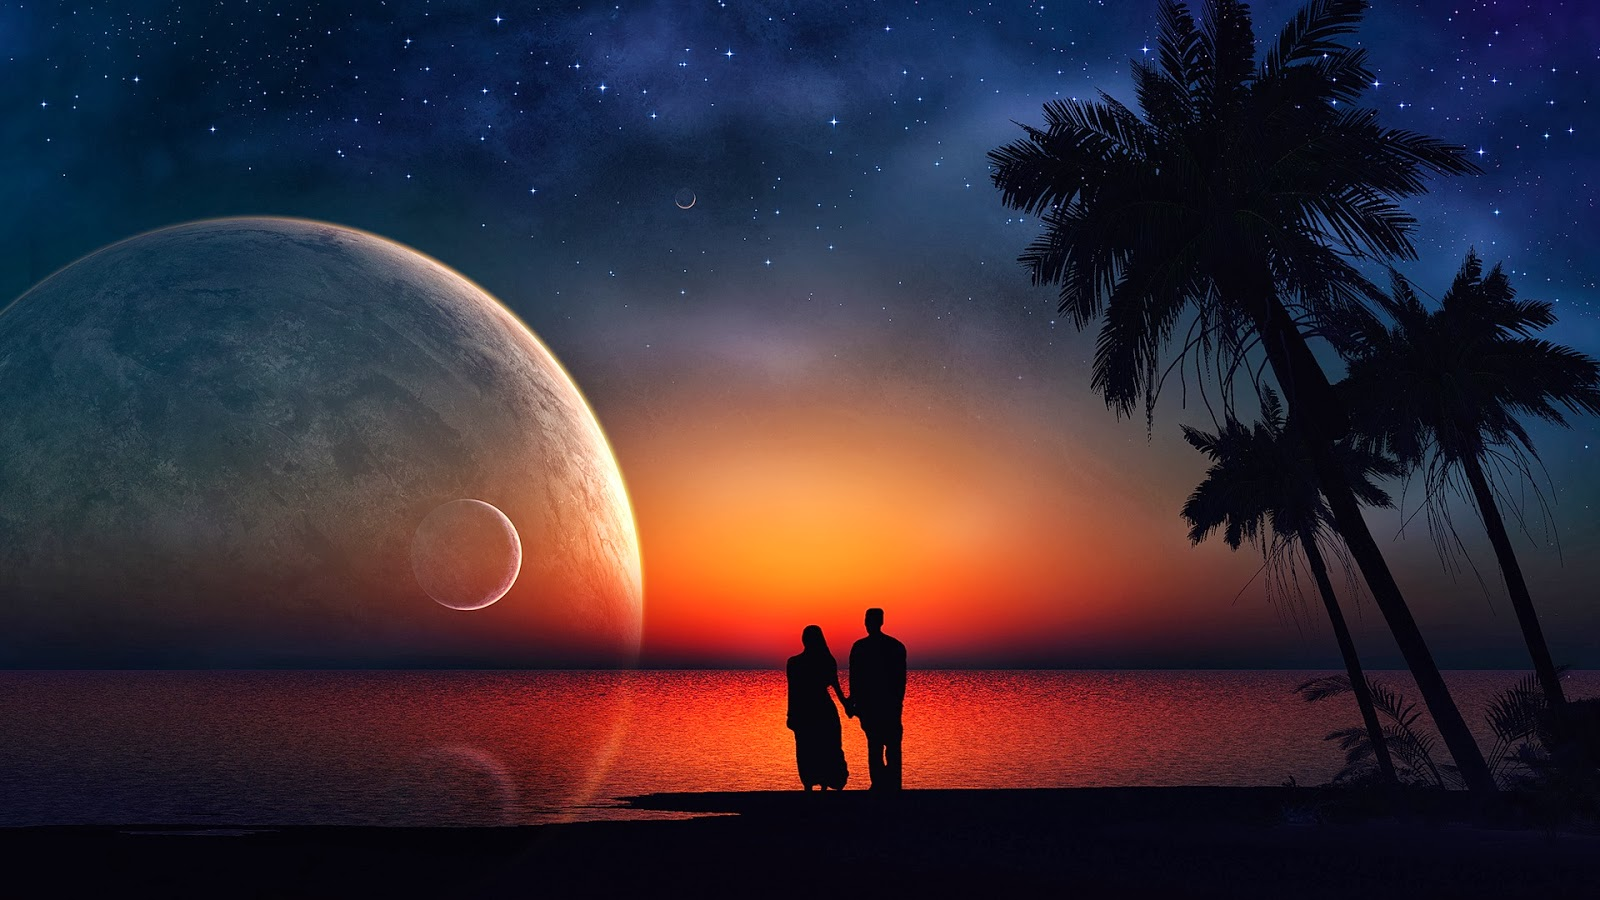 Lover Wallpaper New : Romantic Love Pictures for her - Hug and Kiss, couples Dance in Moonlight Wallpaper, Images, Photos